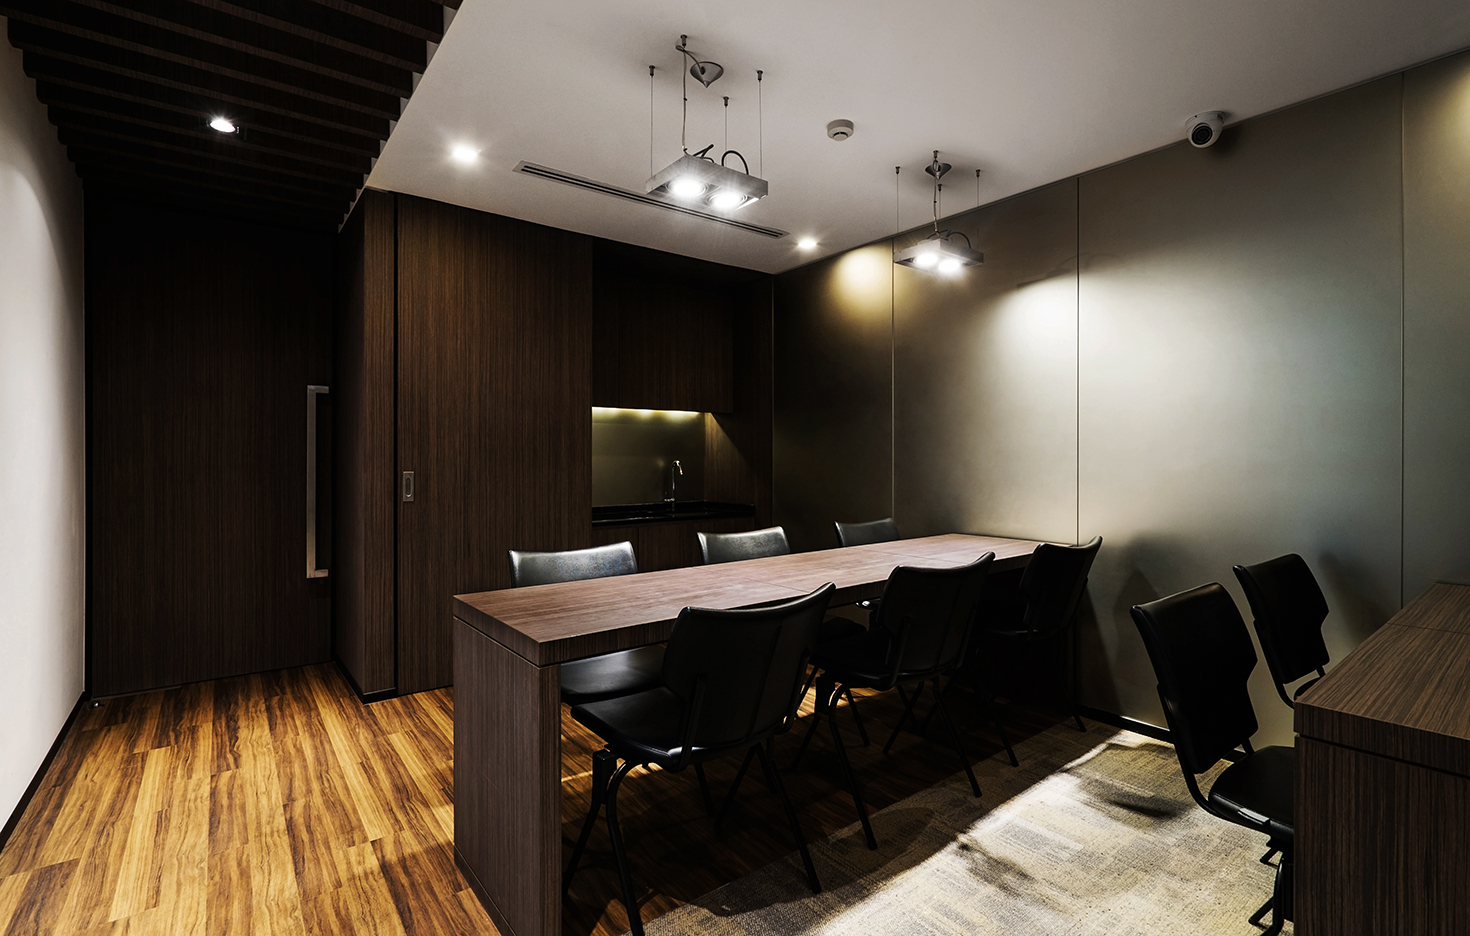 10design Weerawong C&P office interior design law firm 13